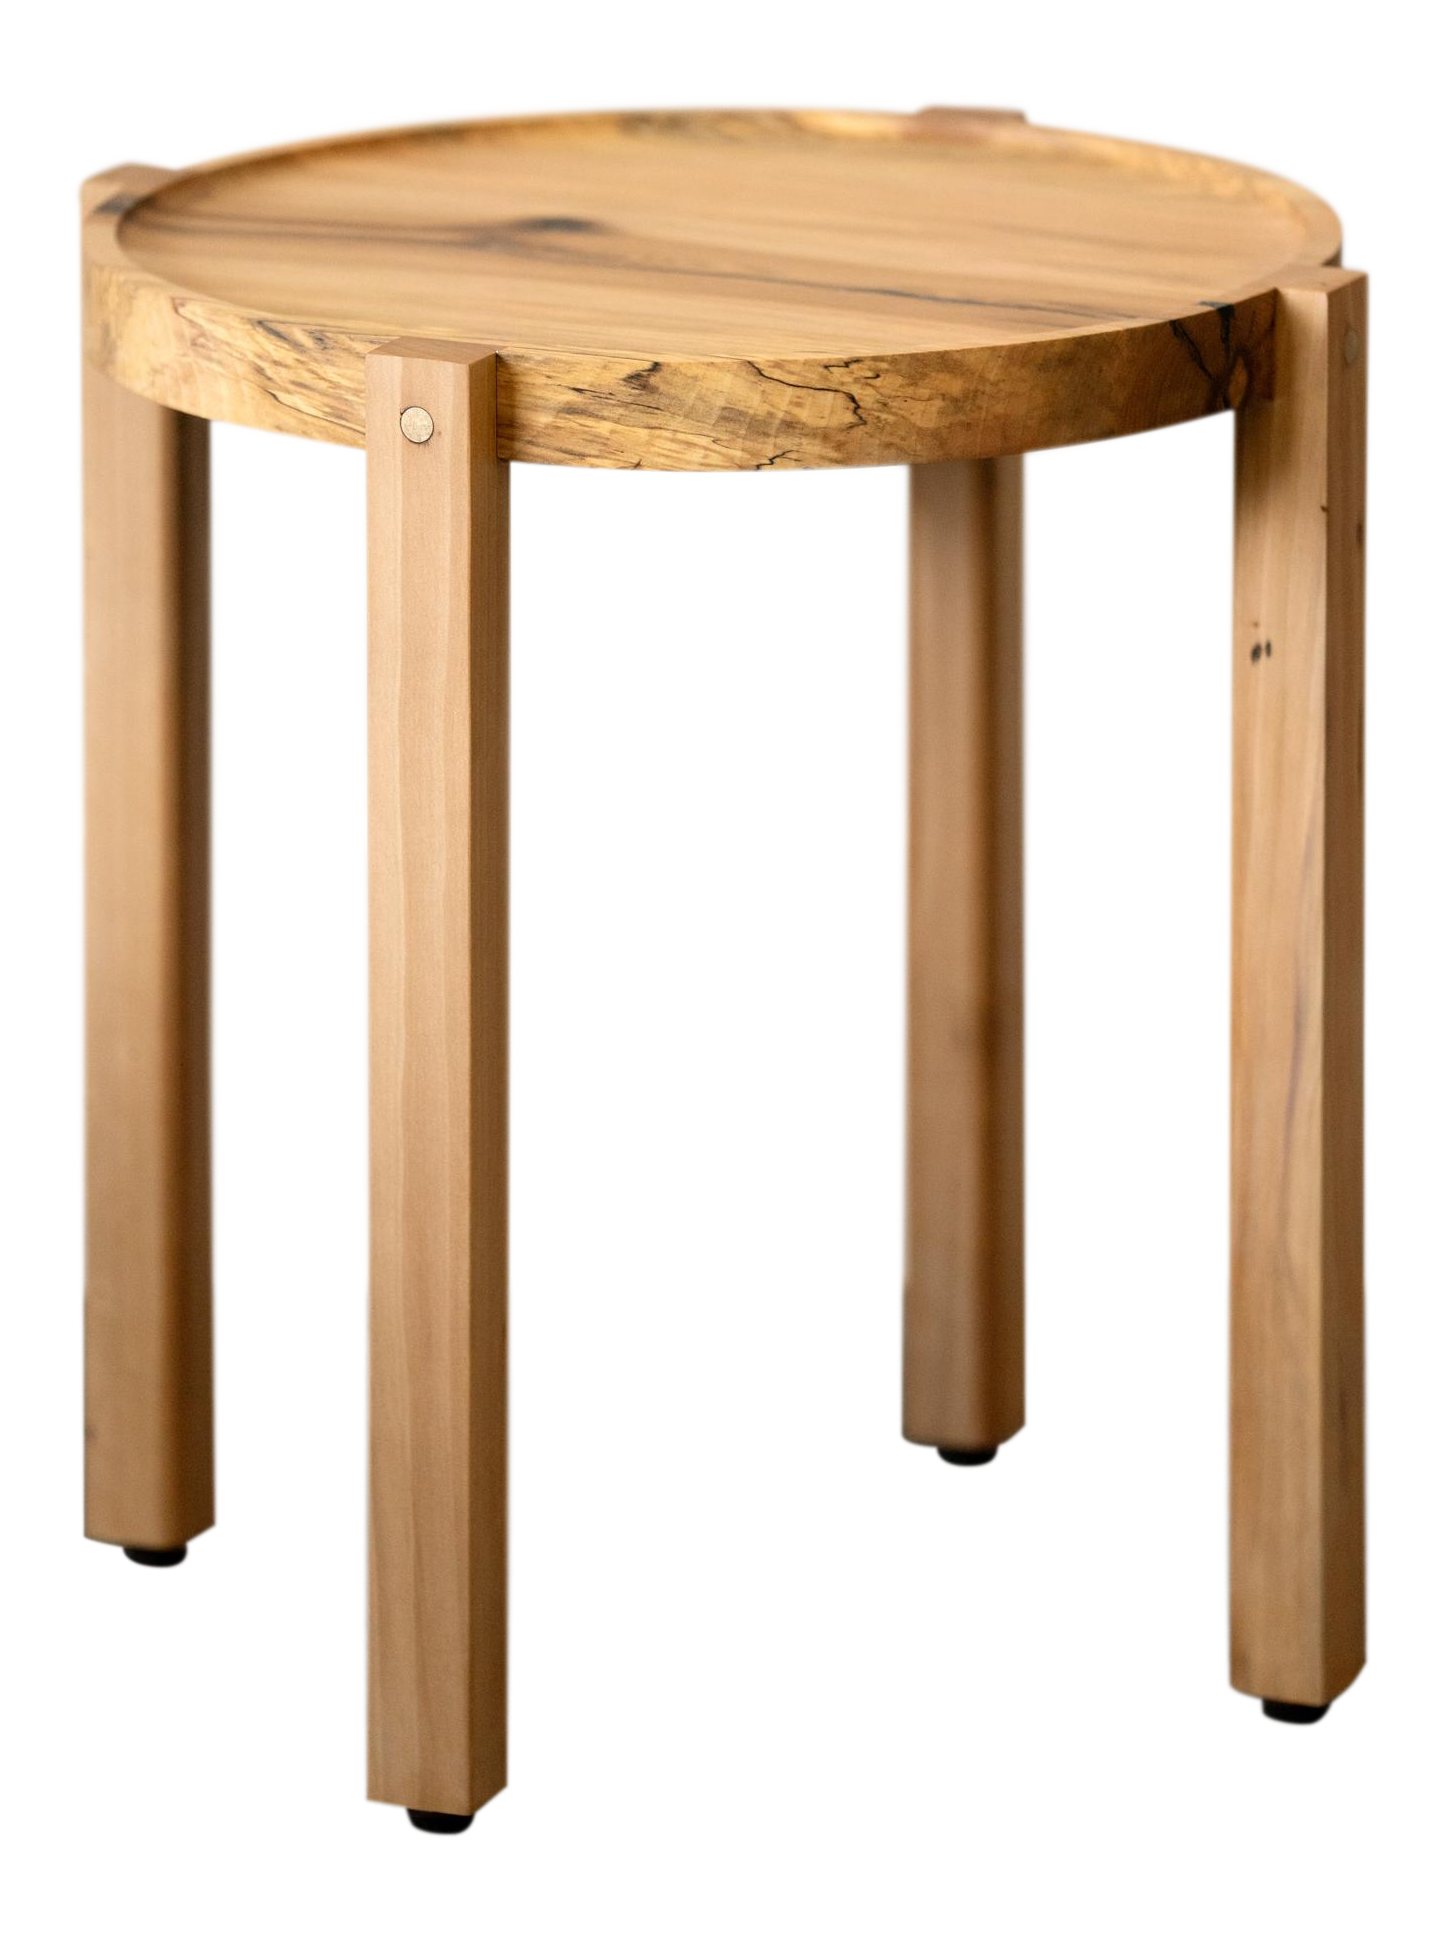 Outstanding Waverly Table Pabps2019 Chair Design Images Pabps2019Com